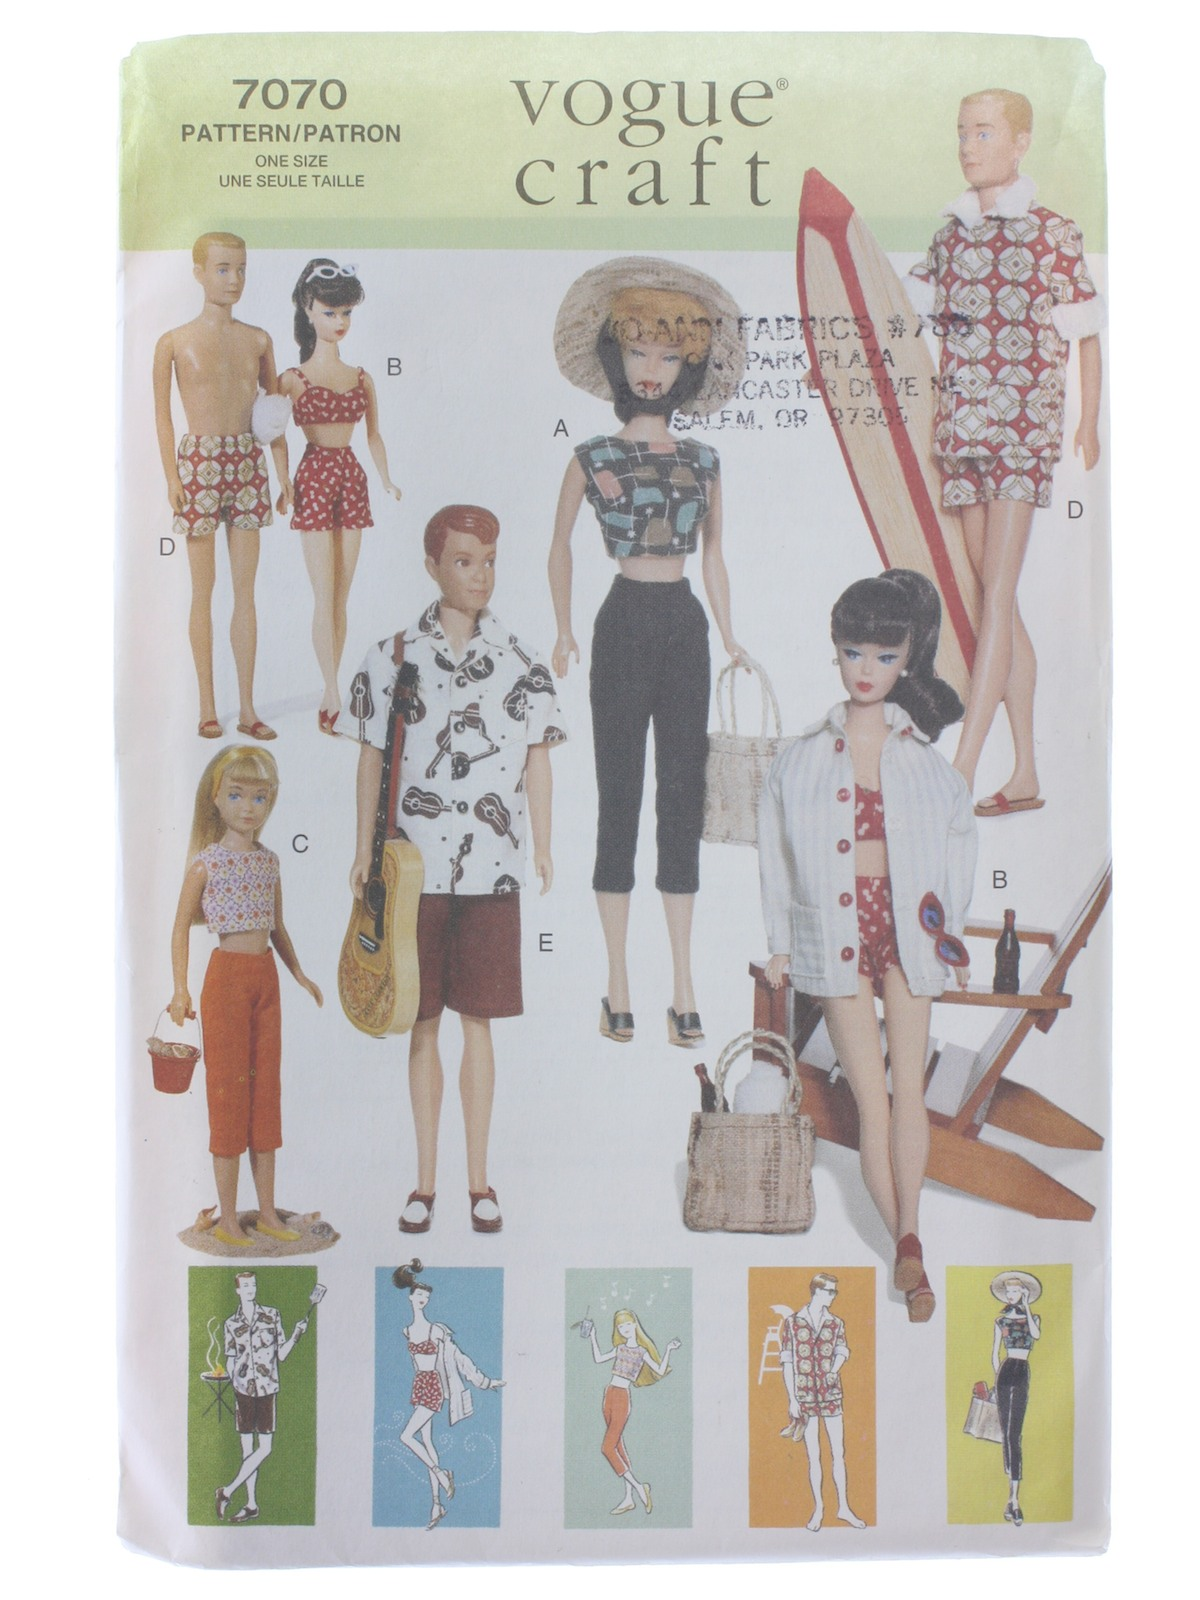 Craft Sewing Patterns Cool Design Inspiration